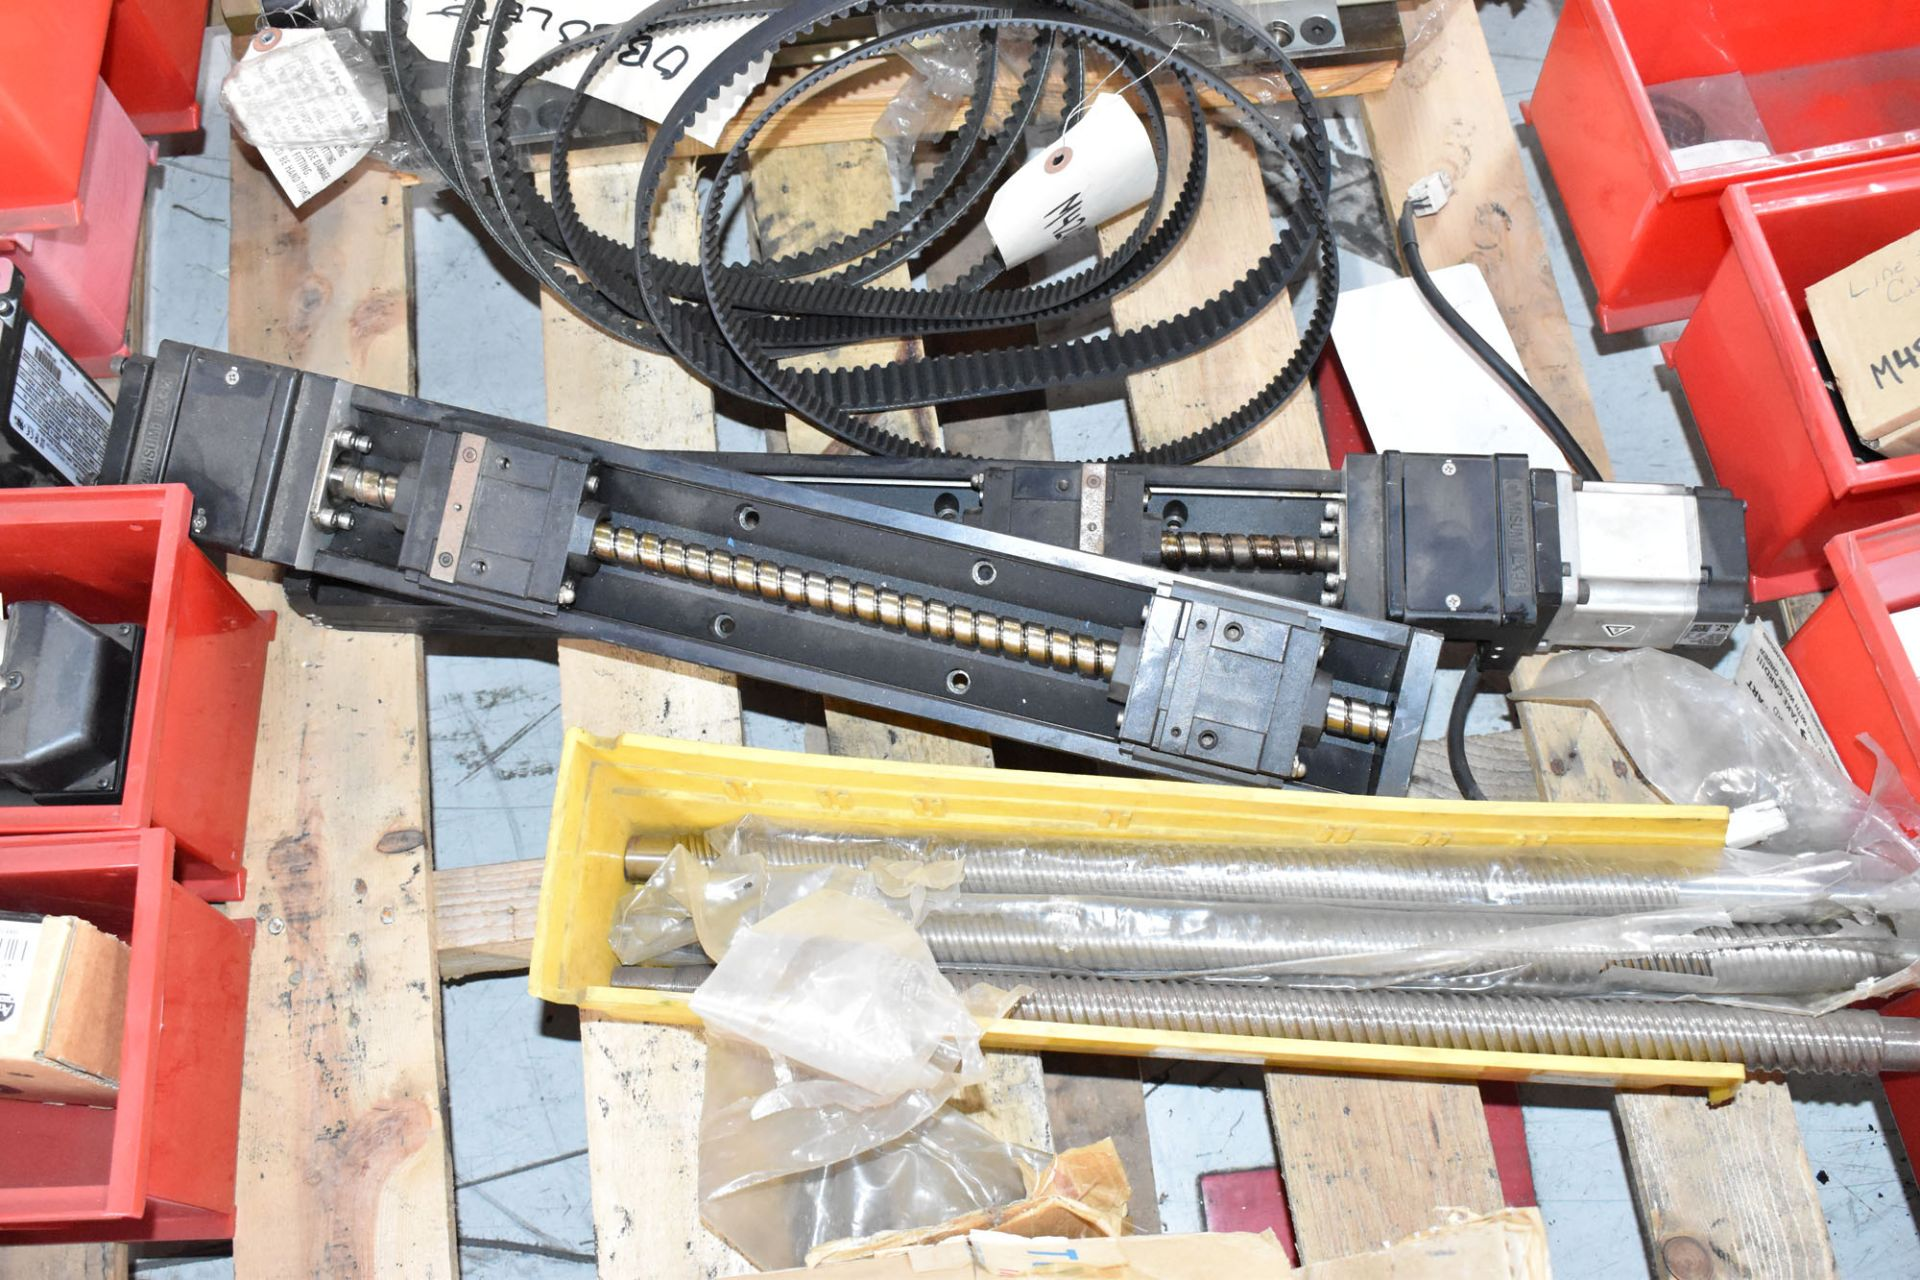 LOT/ PALLET WITH CONTENTS CONSISTING OF FITTINGS, HARDWARE, AND EXTRUDER LINE COMPONENTS [RIGGING - Image 3 of 5